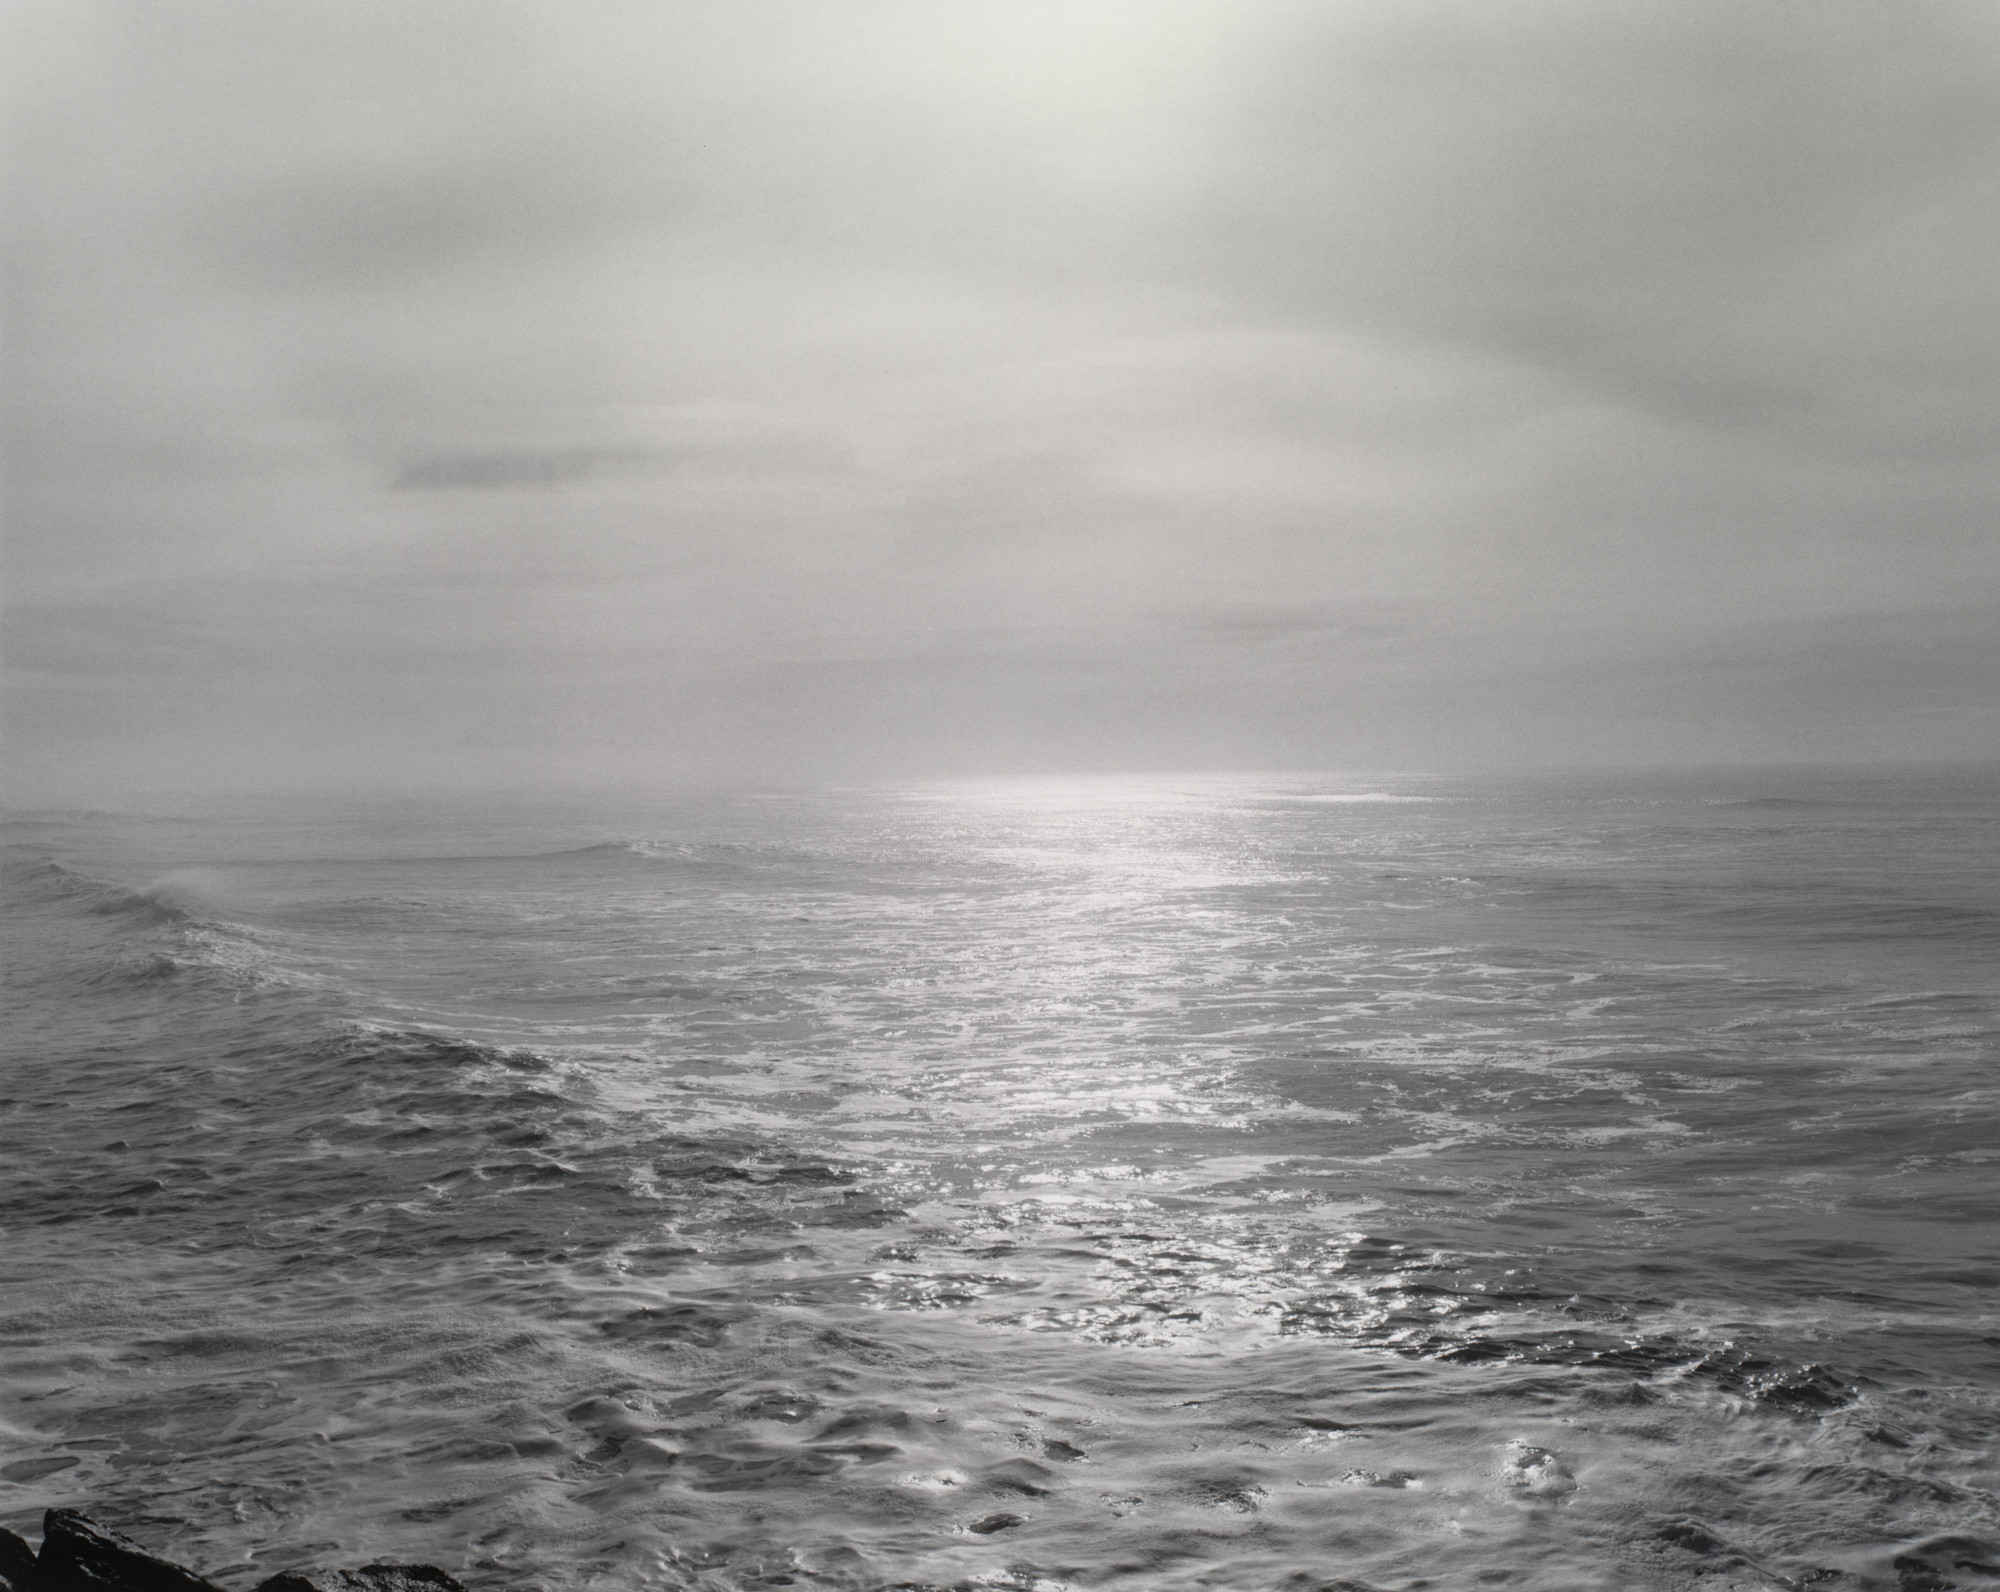 Robert Adams. Southwest from the South Jetty, Clatsop County, Oregon. 1990